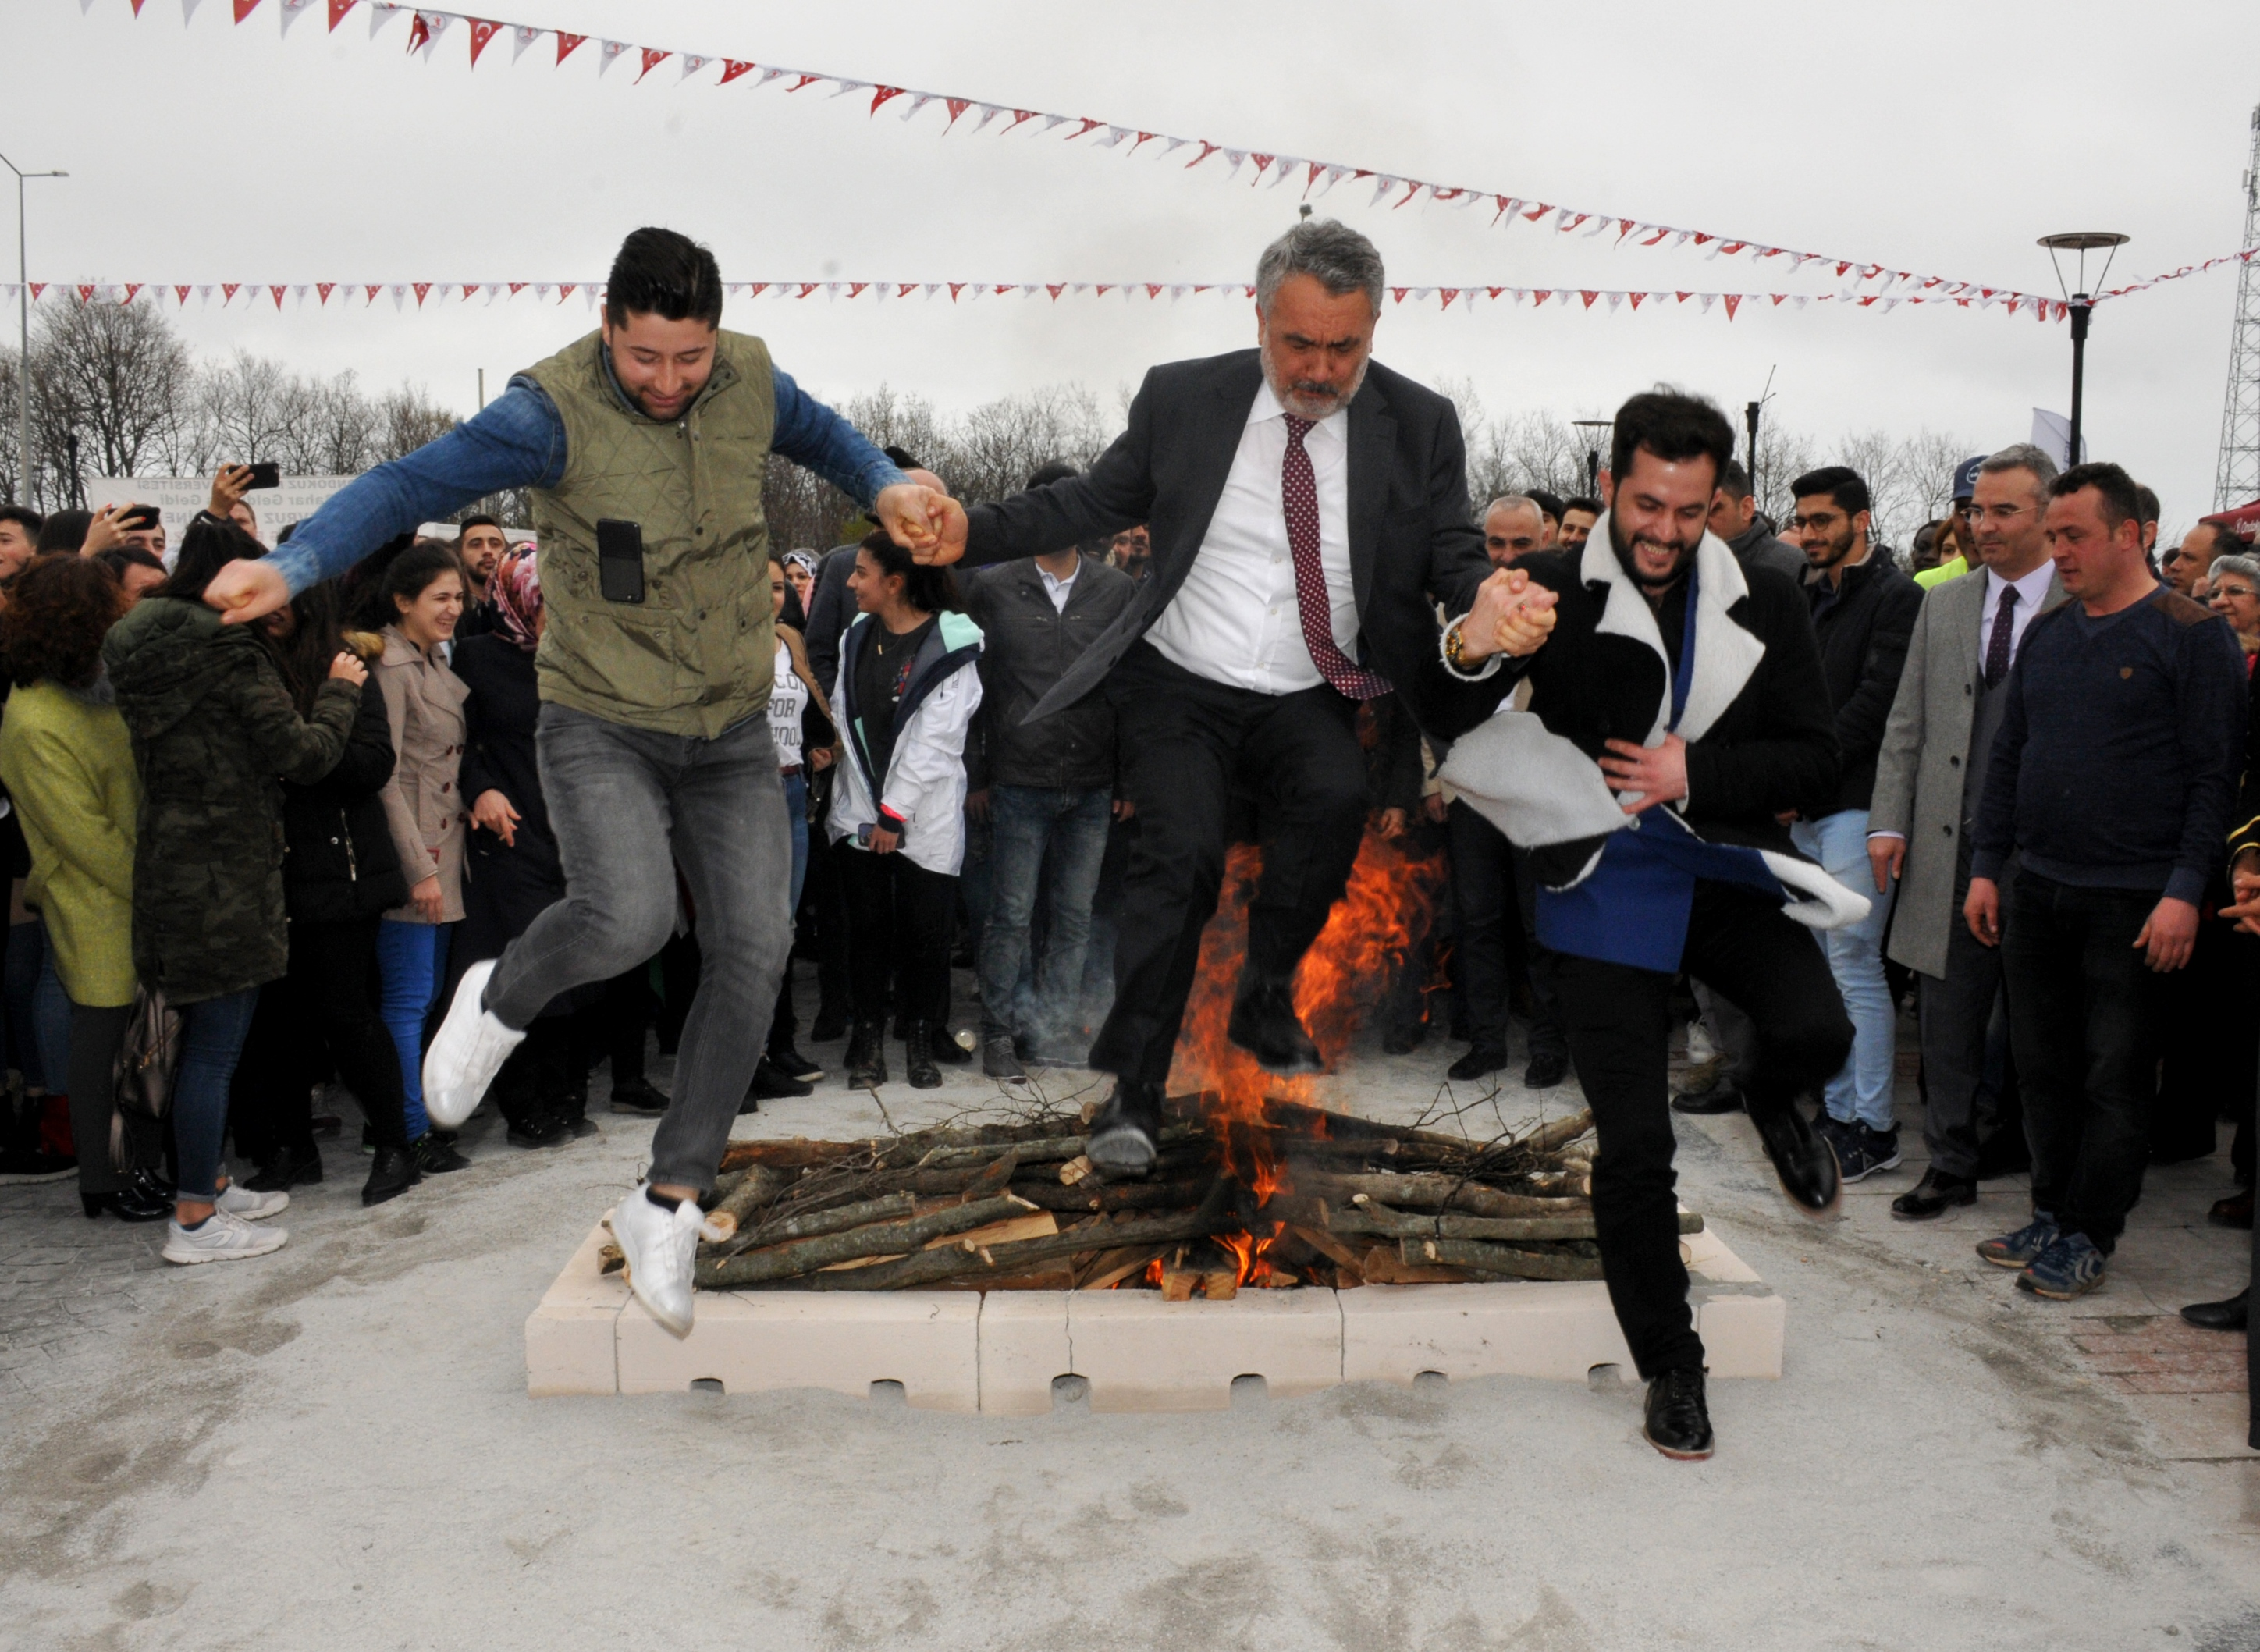 http://www.omu.edu.tr/sites/default/files/files/omu_family_enthusiastically_celebrated_newroz/dsc_0268.jpg